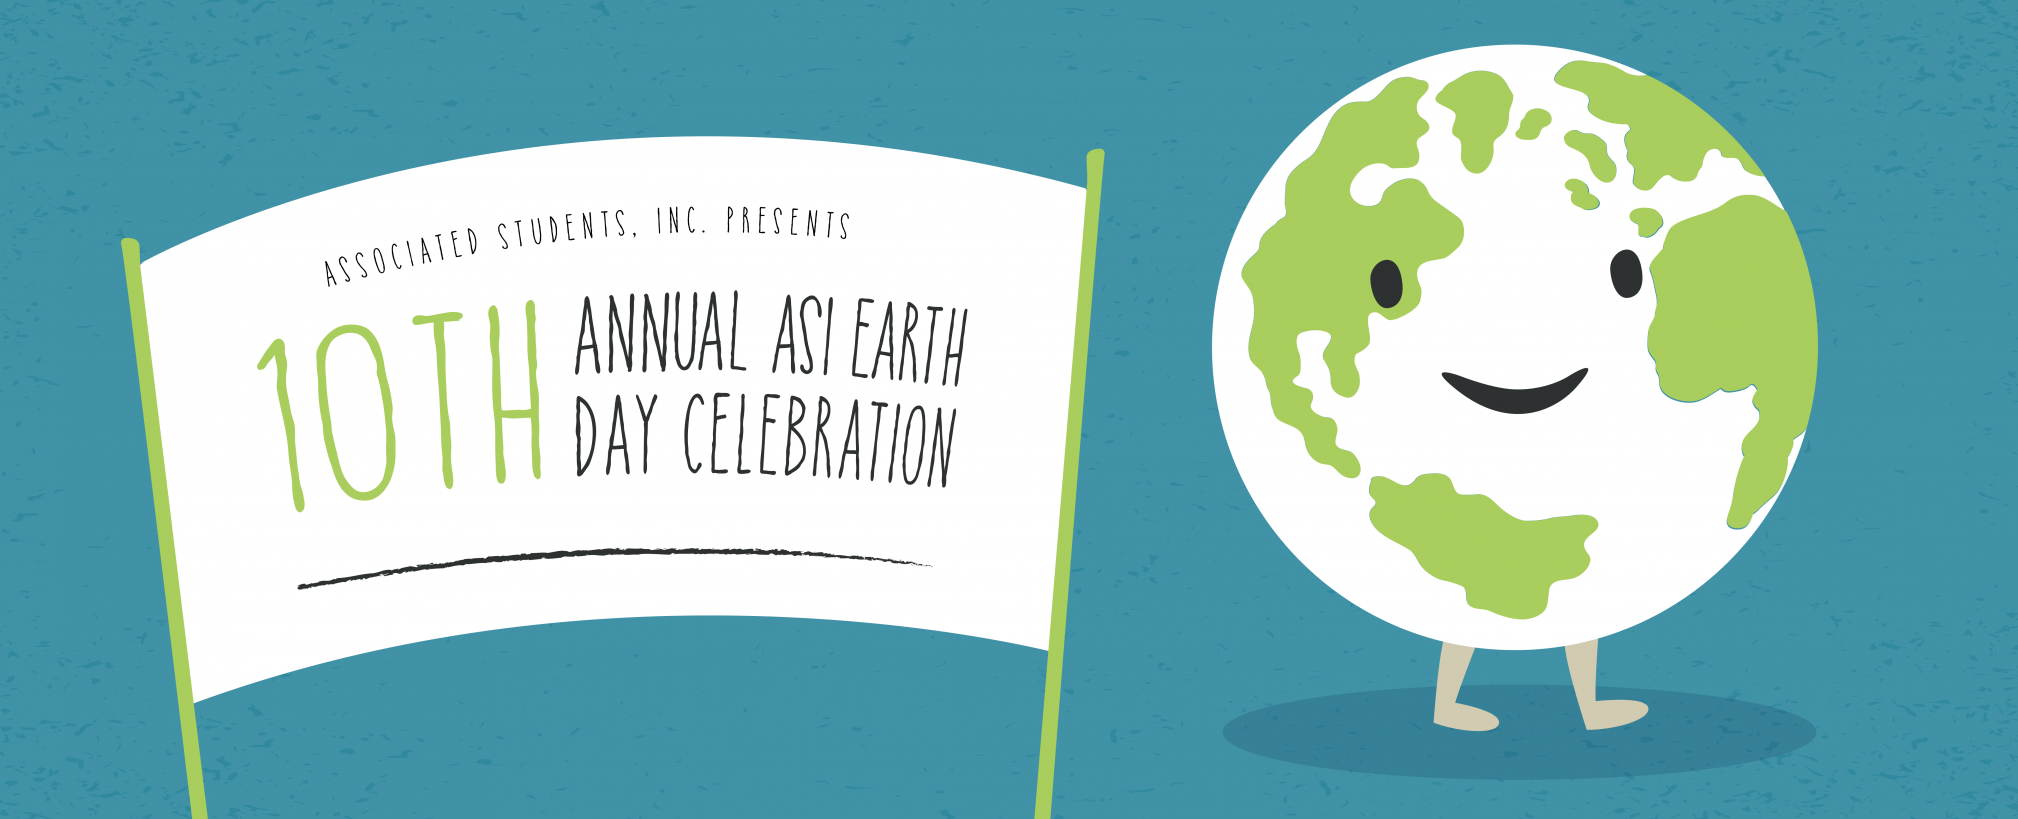 10th Annual ASI Earth Day Celebration